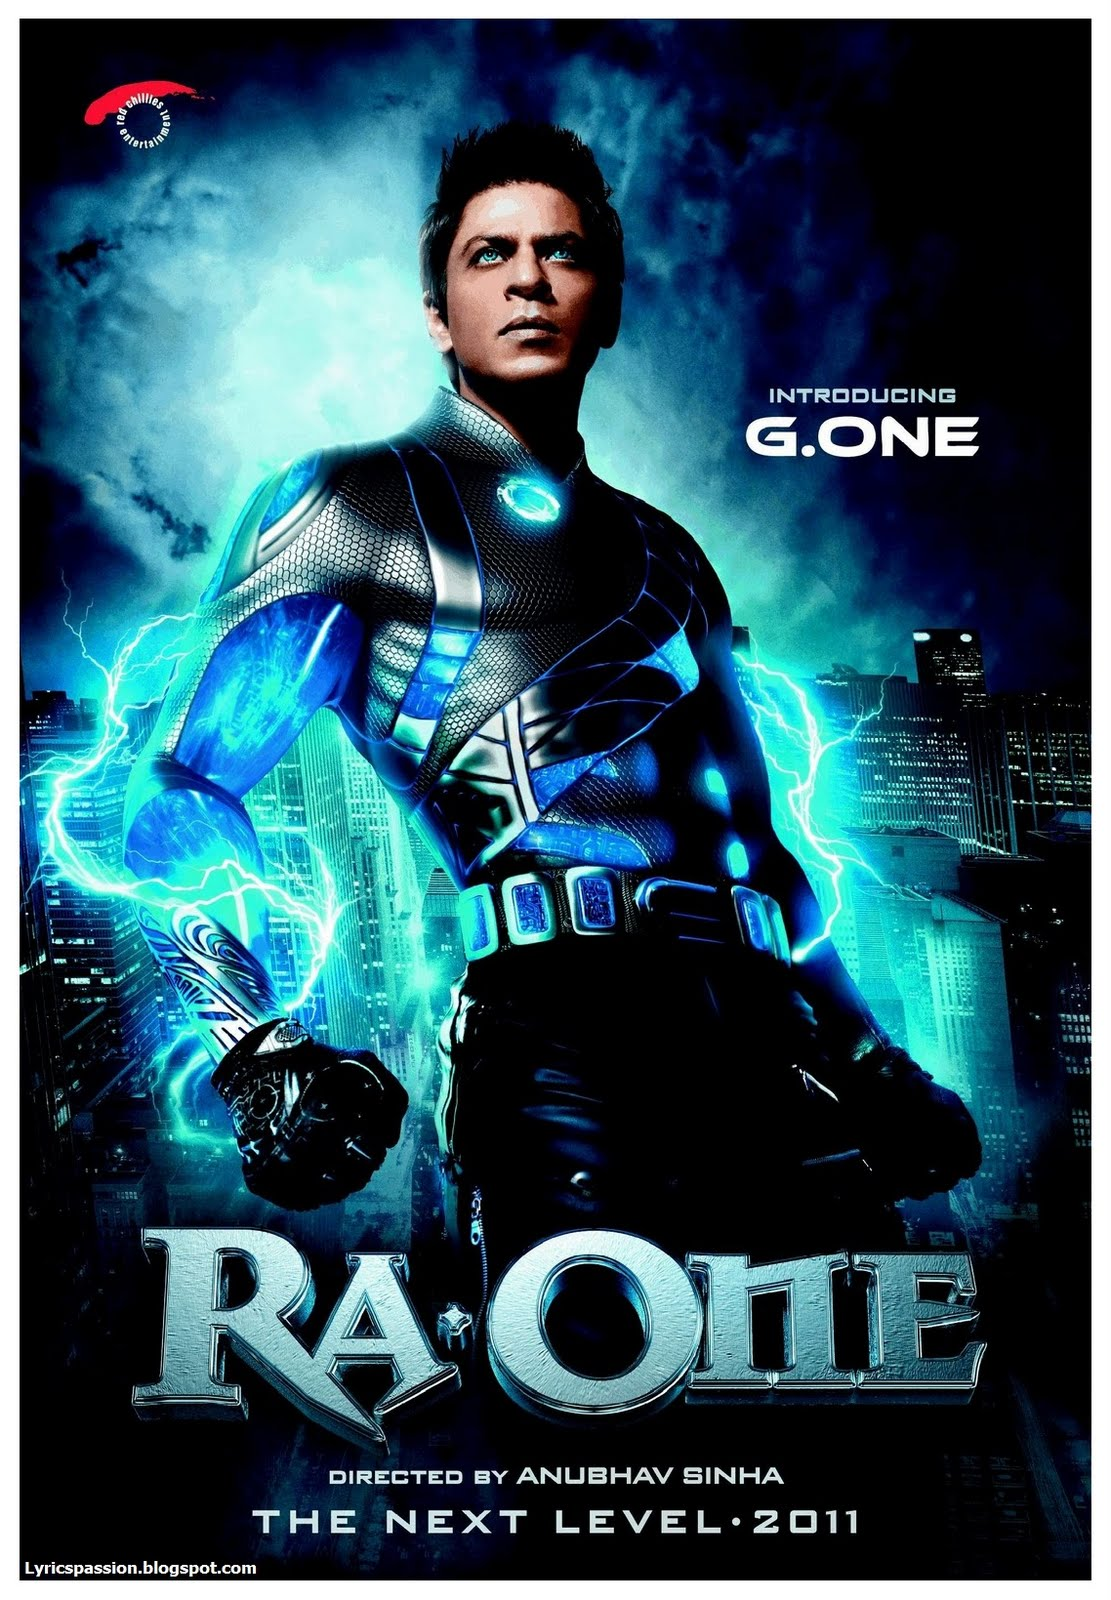 Today Is Most Important Of All Shahrukh Khan Fans Causes Today Realize The Thrilling And Science Fiction Ra One Free Download Hindi Movie Ra One